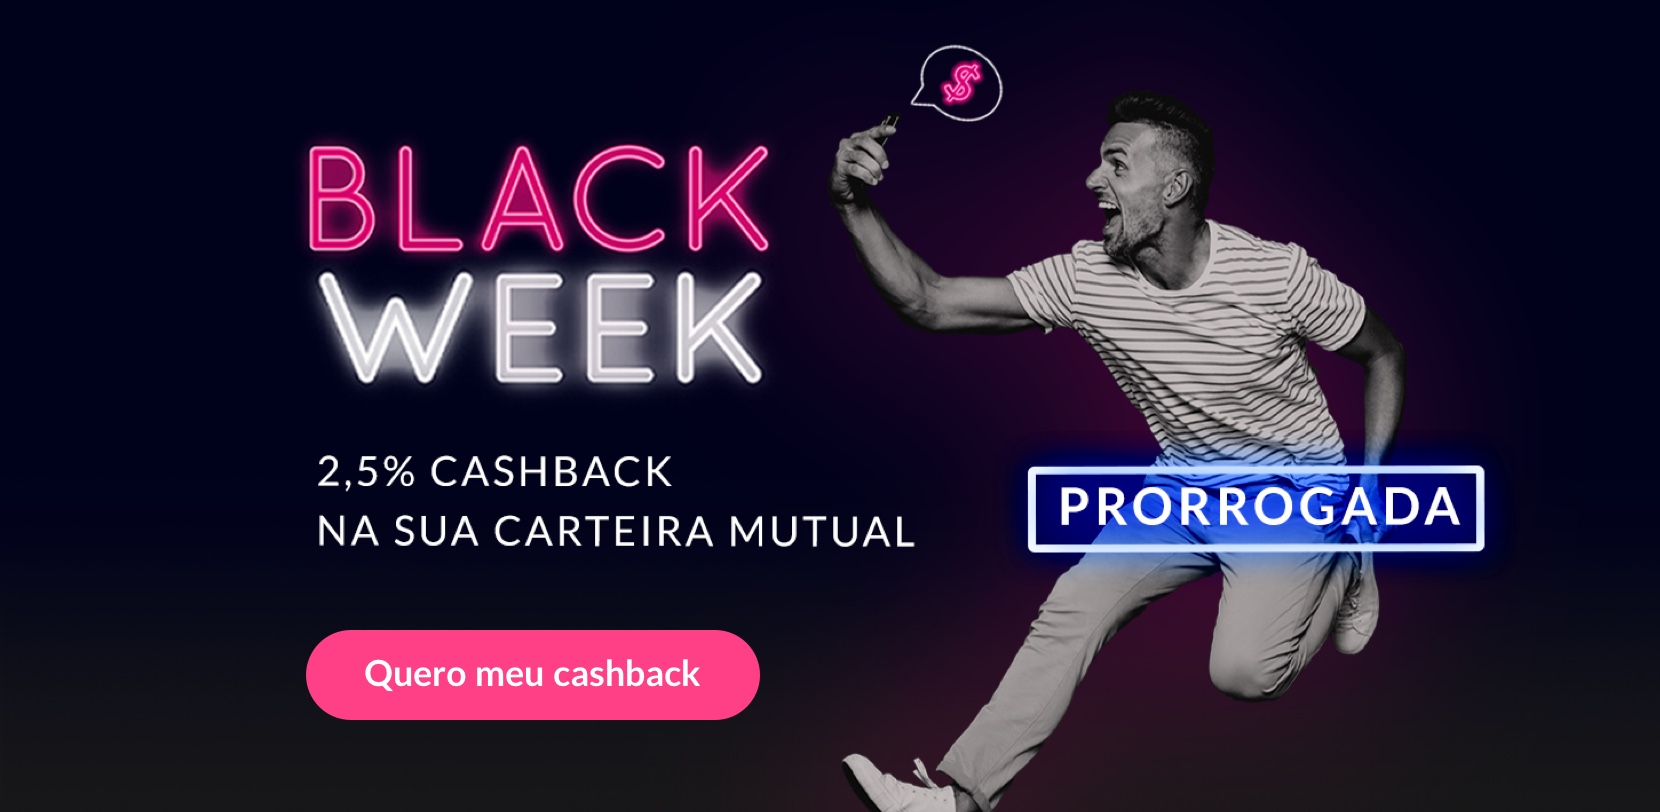 Black Week 2,5% de cashback